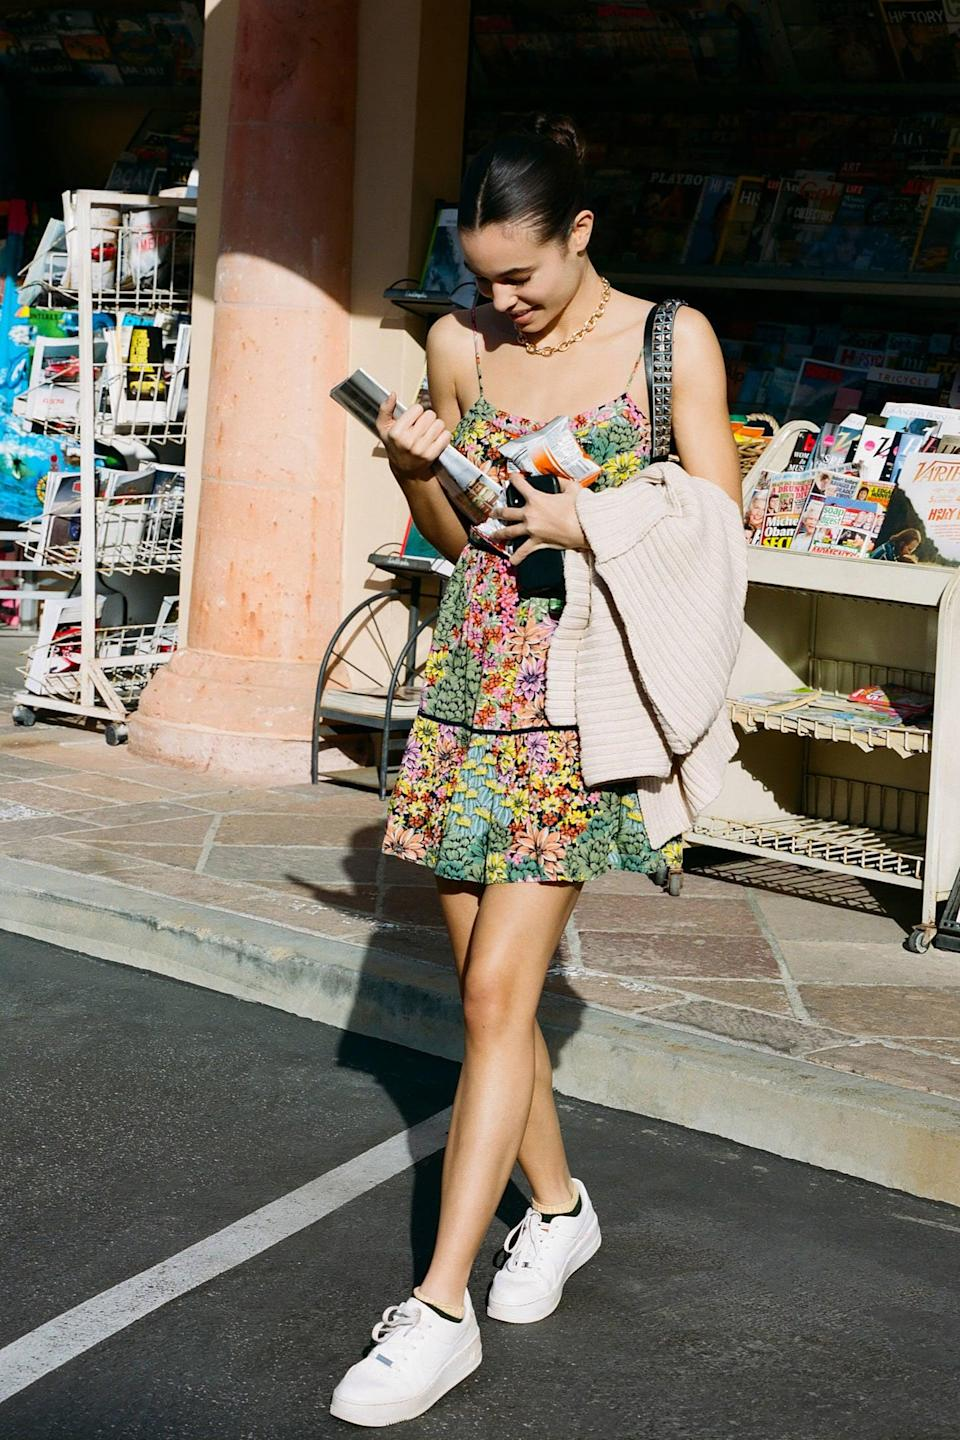 "<p>This <a href=""https://www.popsugar.com/buy/UO-Honey-Tiered-Frock-Mini-Dress-544770?p_name=UO%20Honey%20Tiered%20Frock%20Mini%20Dress&retailer=urbanoutfitters.com&pid=544770&price=59&evar1=fab%3Aus&evar9=45873724&evar98=https%3A%2F%2Fwww.popsugar.com%2Ffashion%2Fphoto-gallery%2F45873724%2Fimage%2F47261783%2FUO-Honey-Tiered-Frock-Mini-Dress&list1=shopping%2Cdresses%2Cspring%2Cflorals%2Cspring%20fashion&prop13=mobile&pdata=1"" class=""link rapid-noclick-resp"" rel=""nofollow noopener"" target=""_blank"" data-ylk=""slk:UO Honey Tiered Frock Mini Dress"">UO Honey Tiered Frock Mini Dress</a> ($59) will be a Spring staple.</p>"